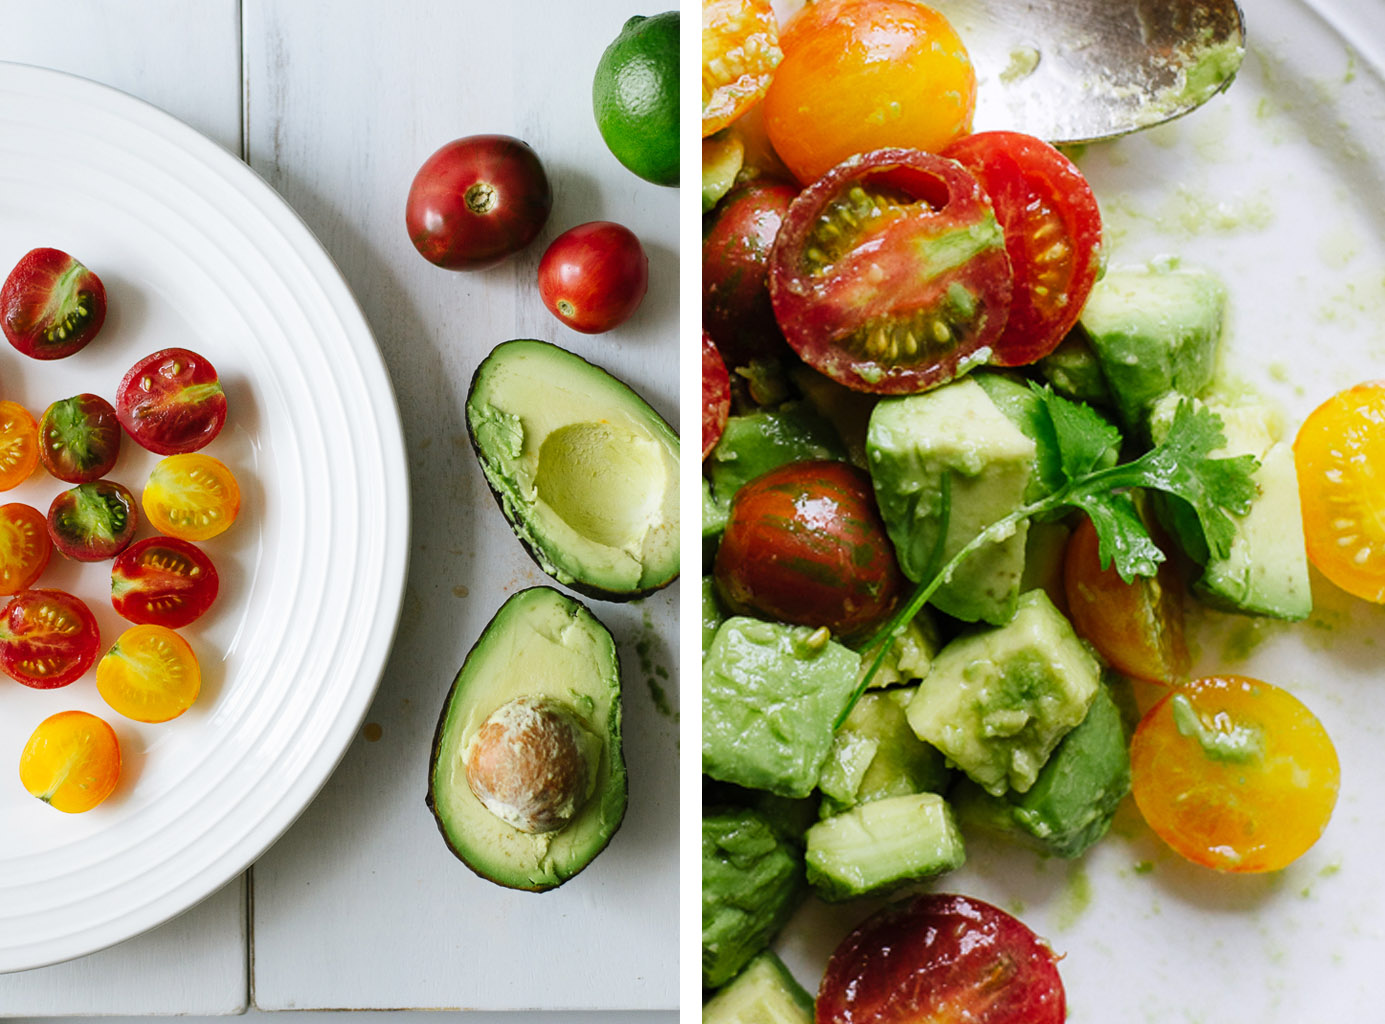 tomato-avocado-duo-fbrcz